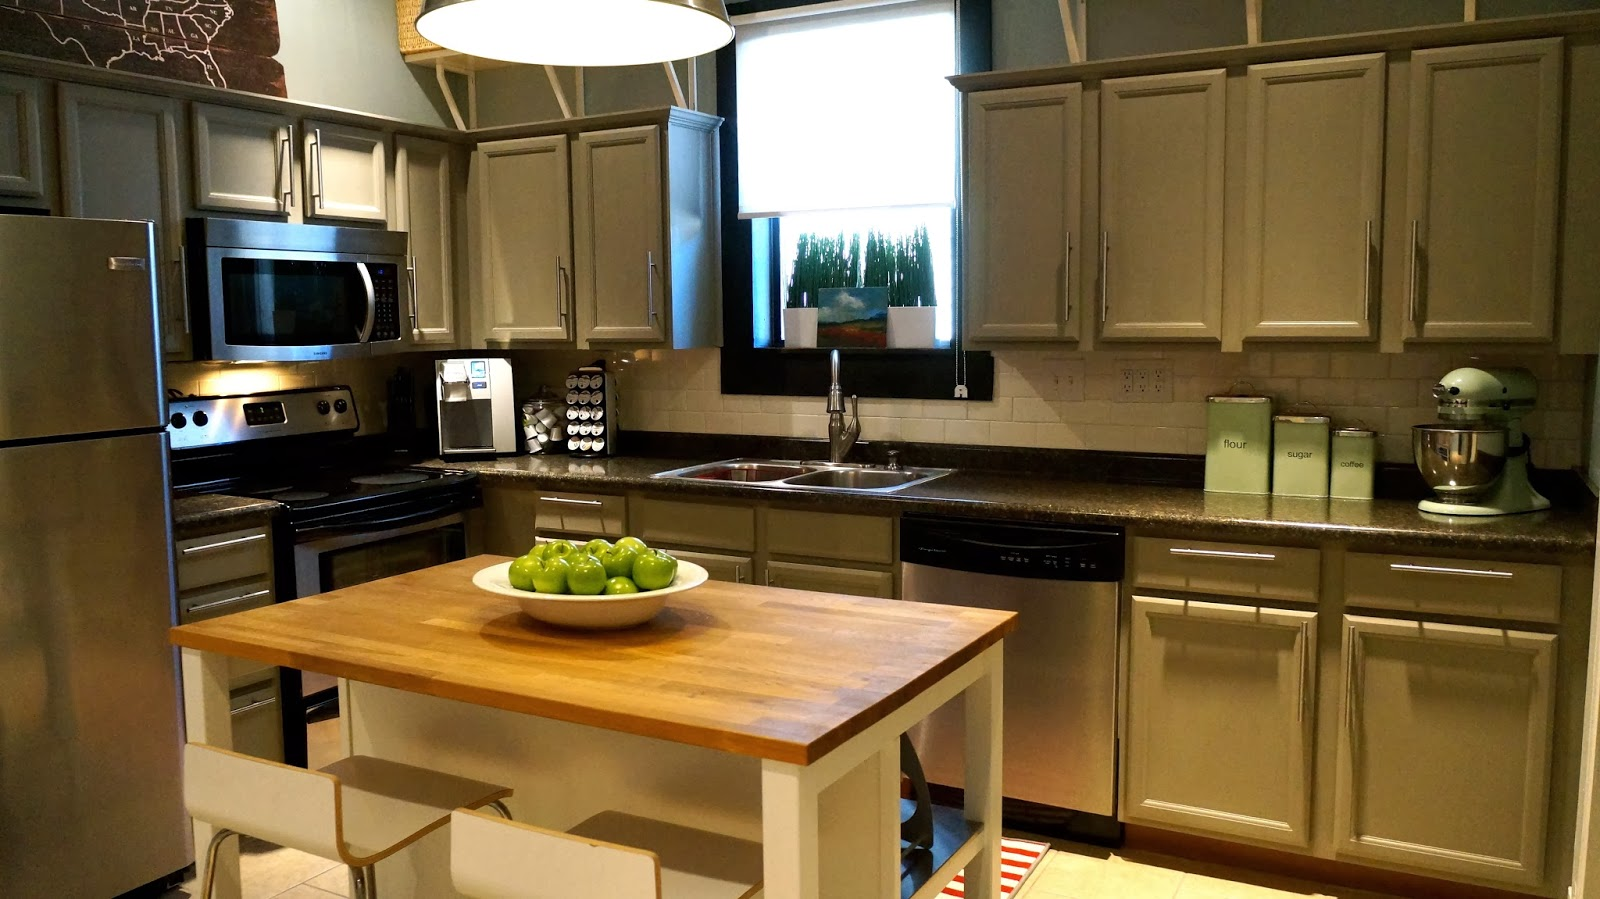 How much to replace kitchen cabinets for Annie sloan chalk paint kitchen cabinets